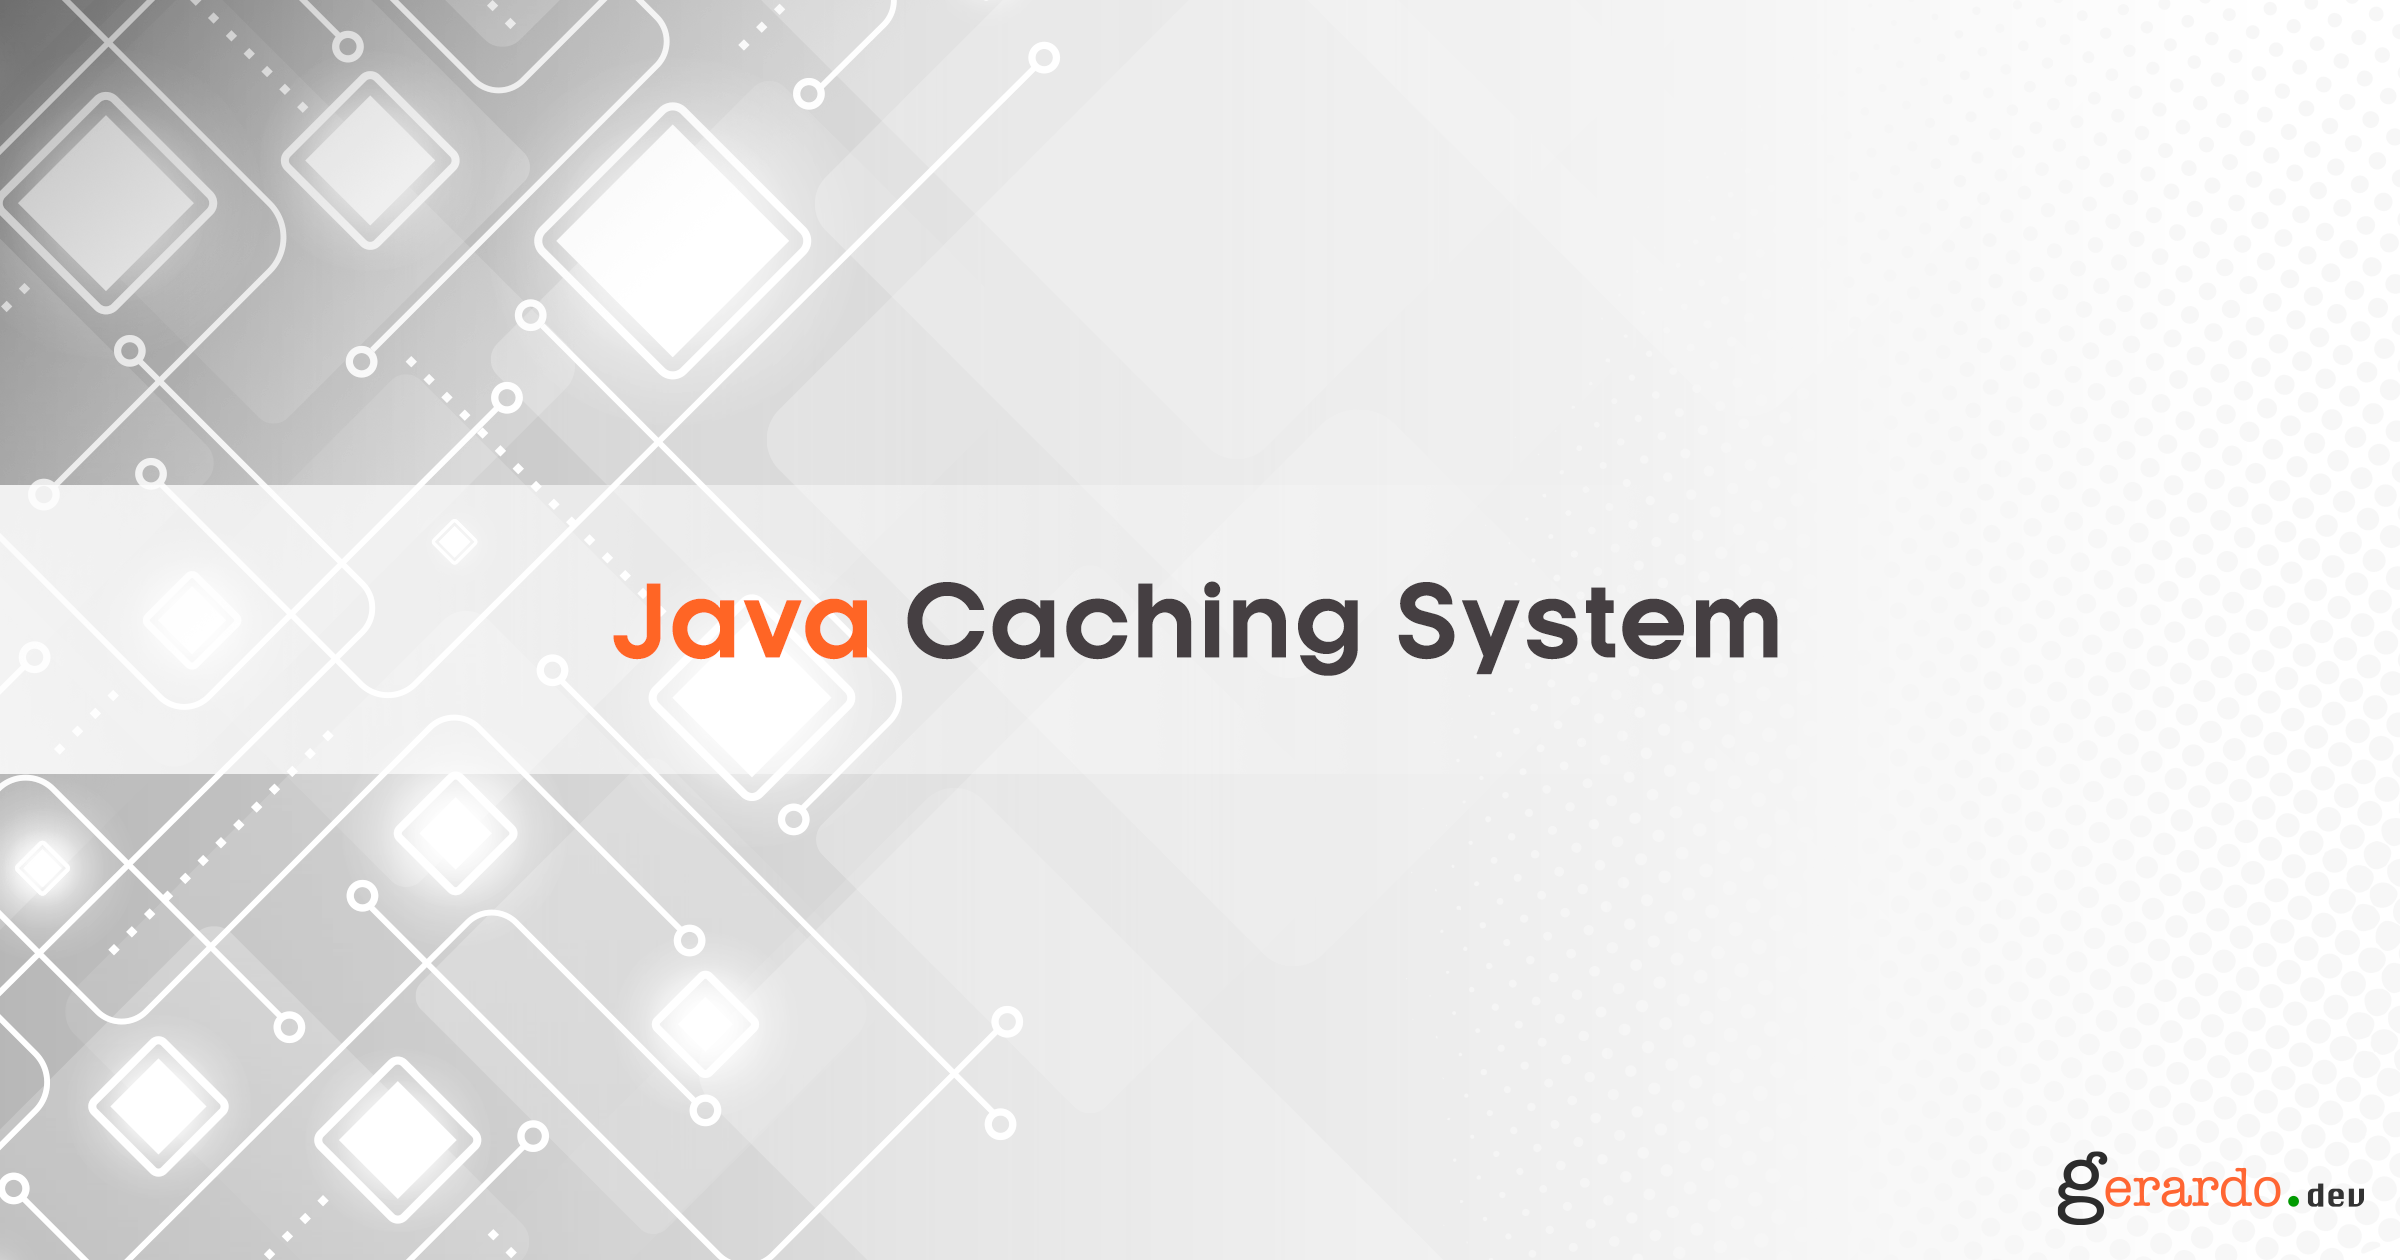 Java Caching System